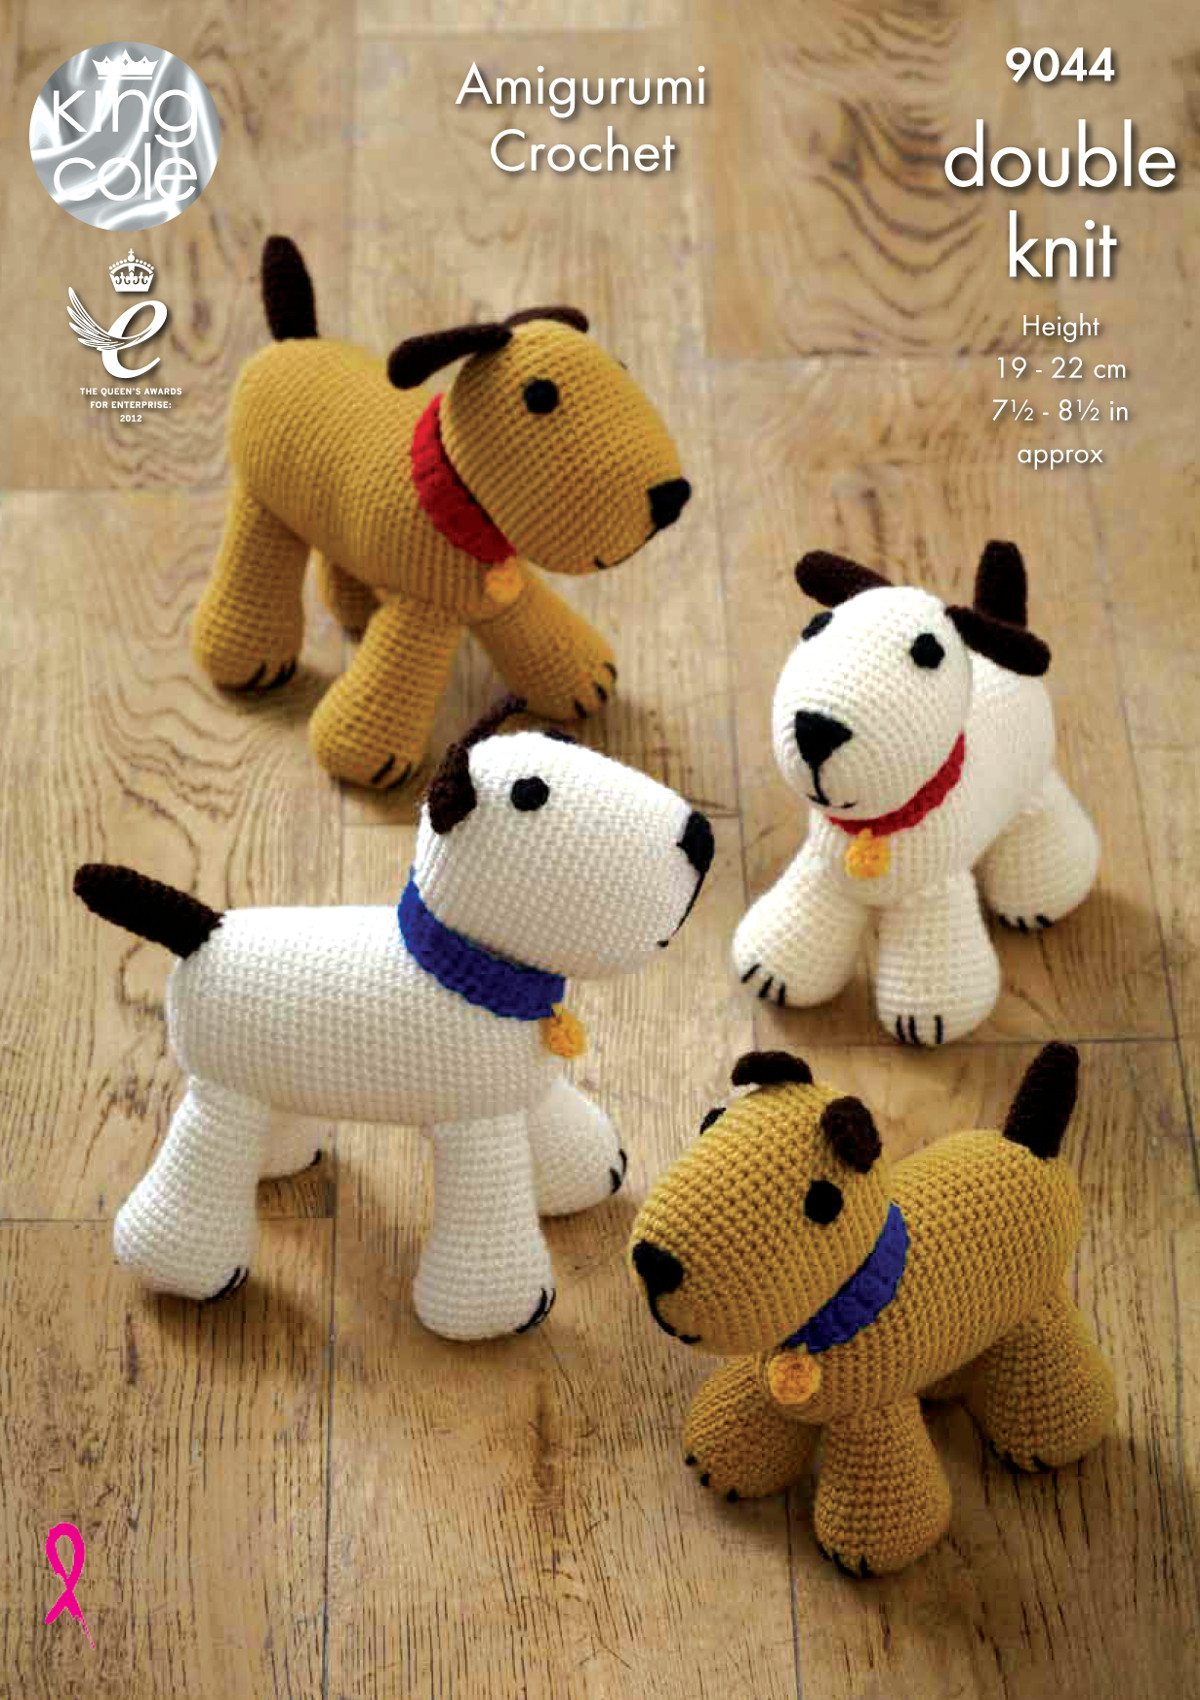 Amigurumi Dog Knitting Patterns : King Cole Amigurumi Crochet Double Knitting DK Pattern for ...